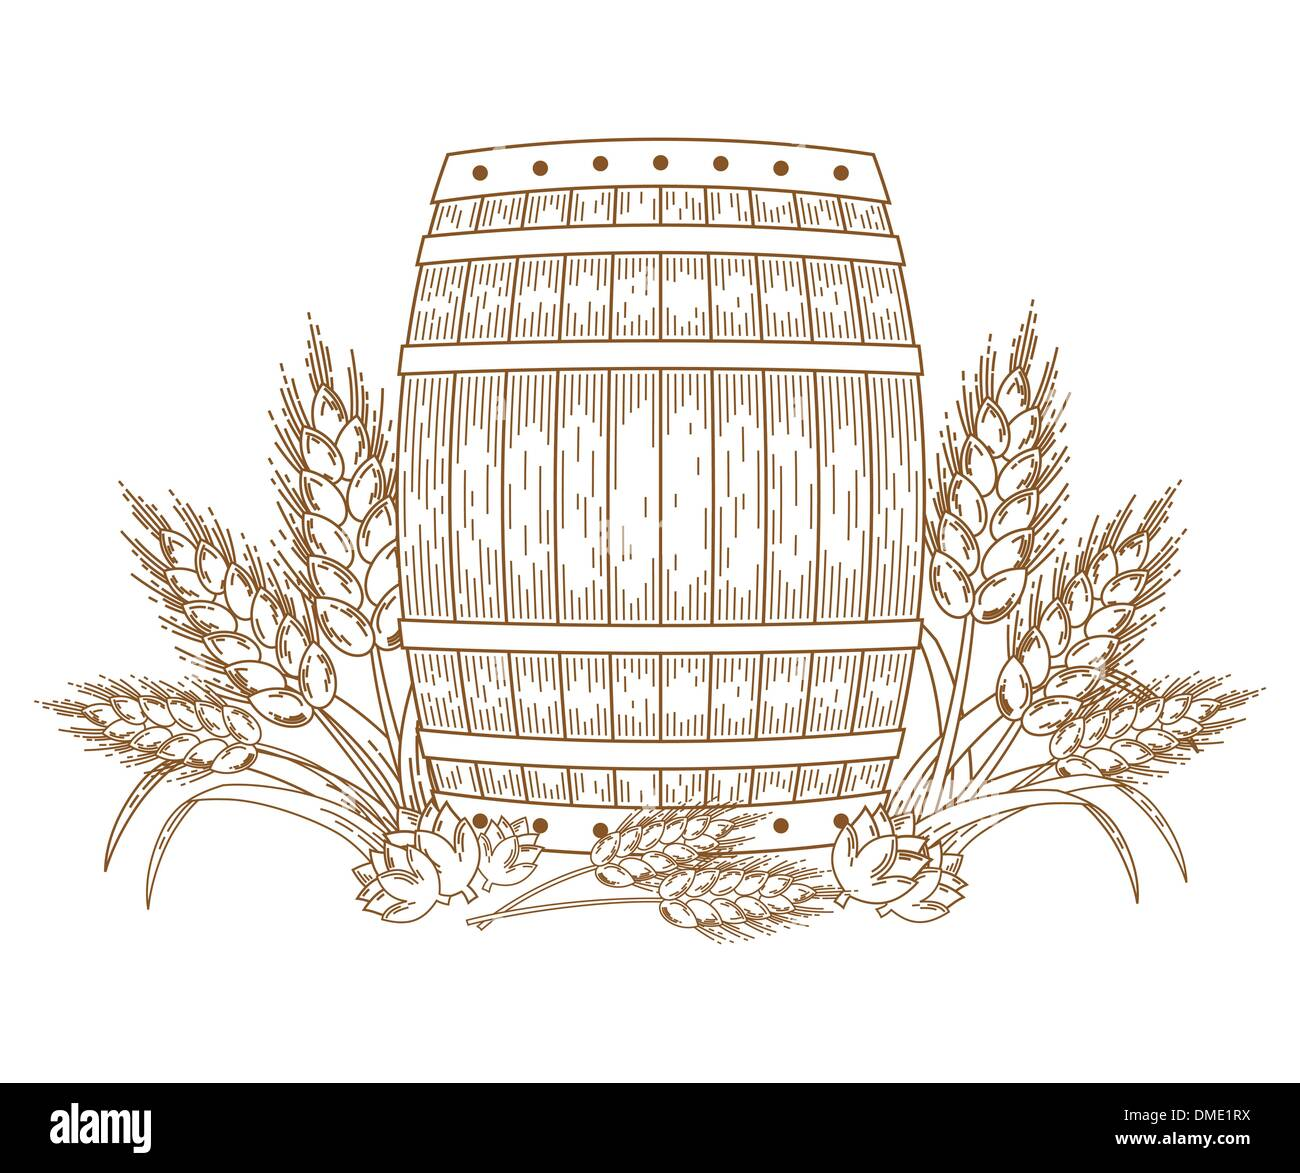 Barrel with wheat ears - Stock Image